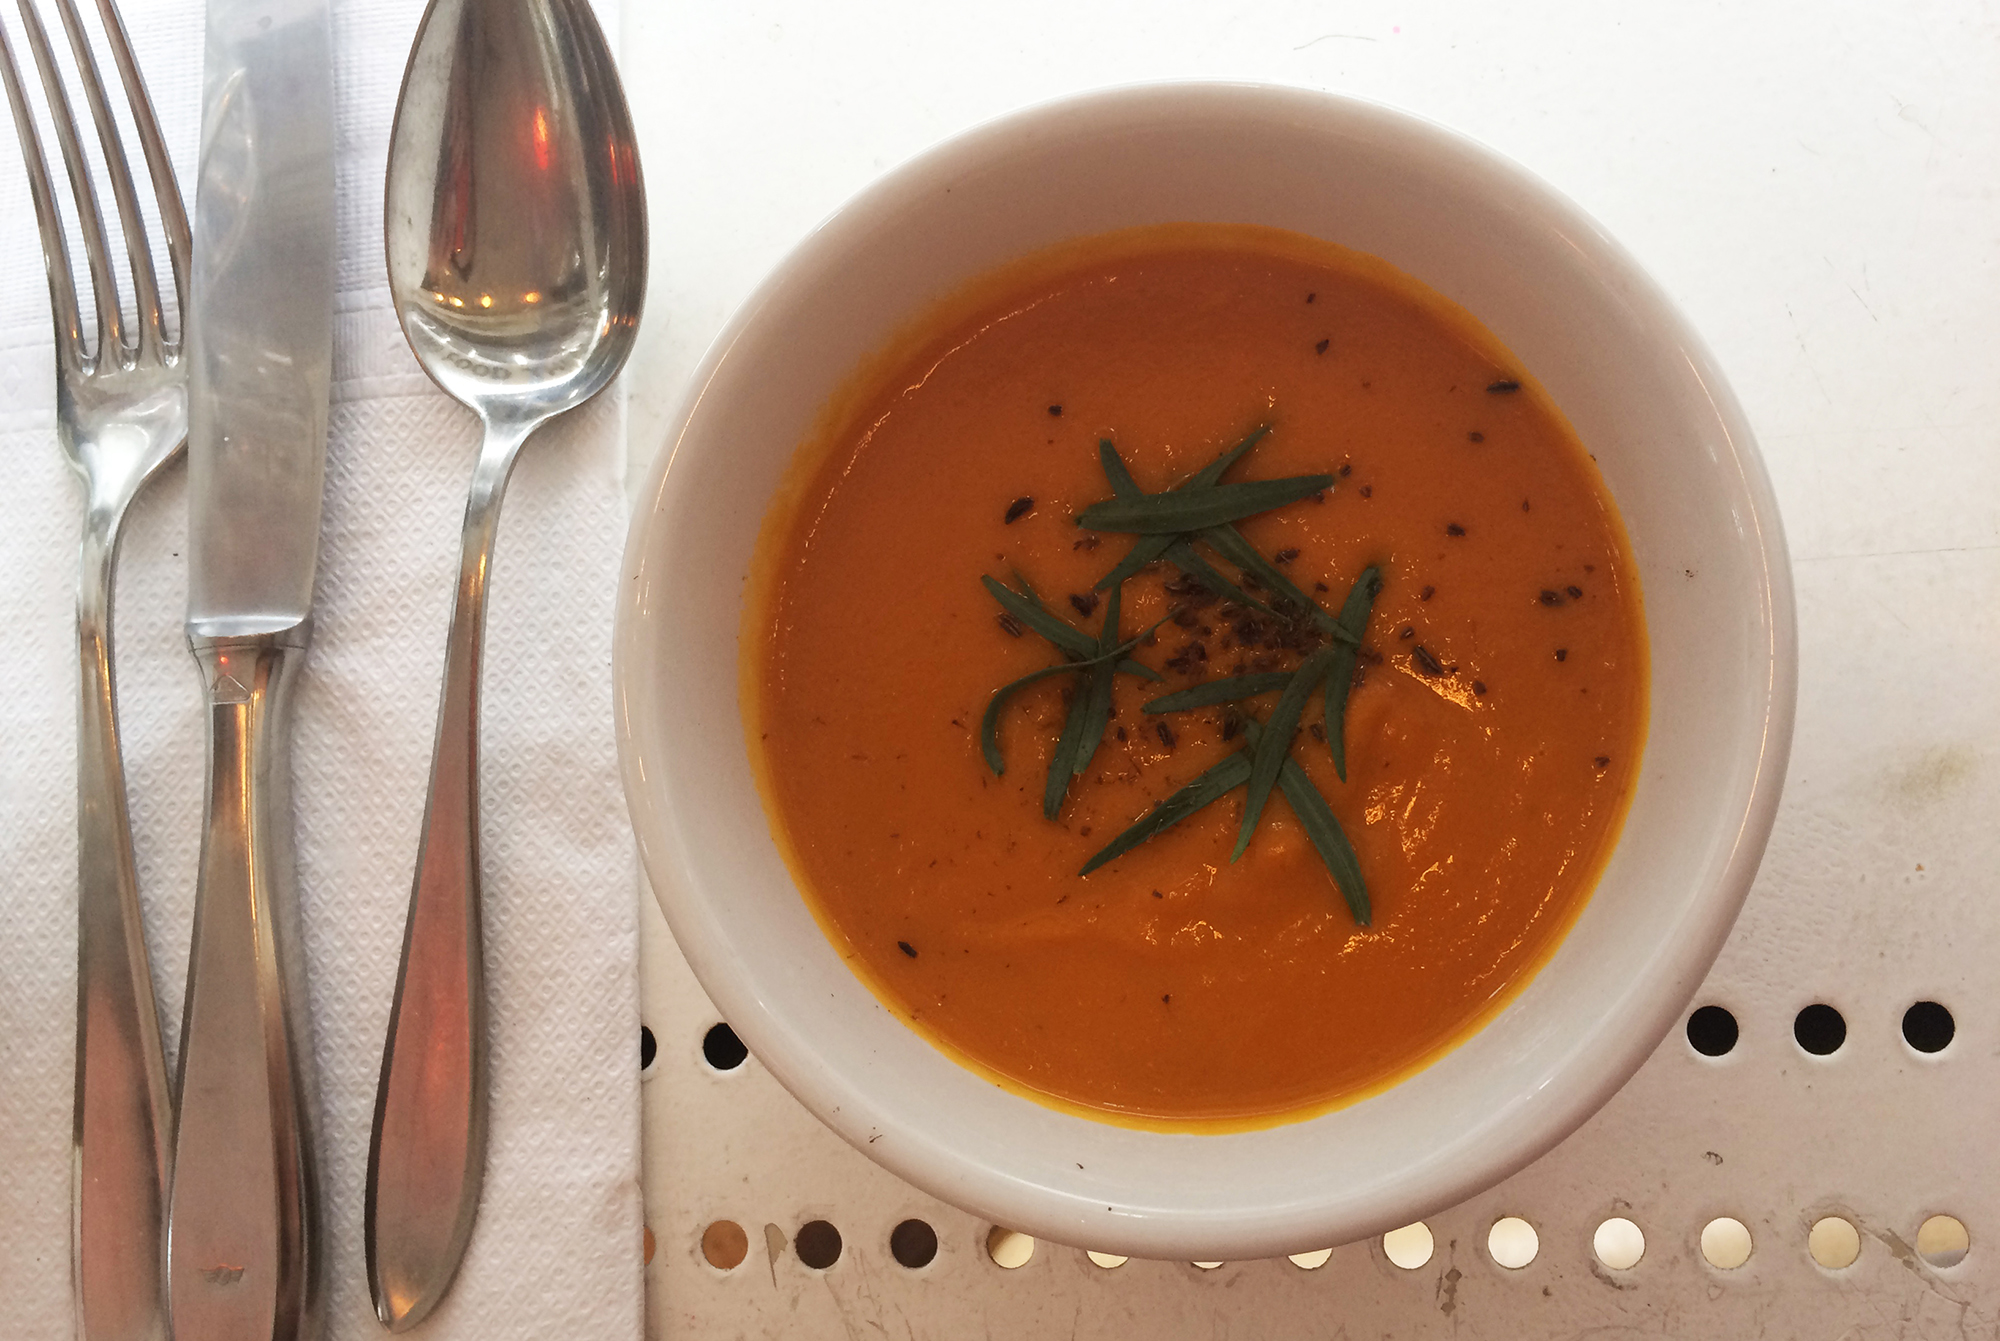 The Depanneur - Caramelized Carrot Cream Soup